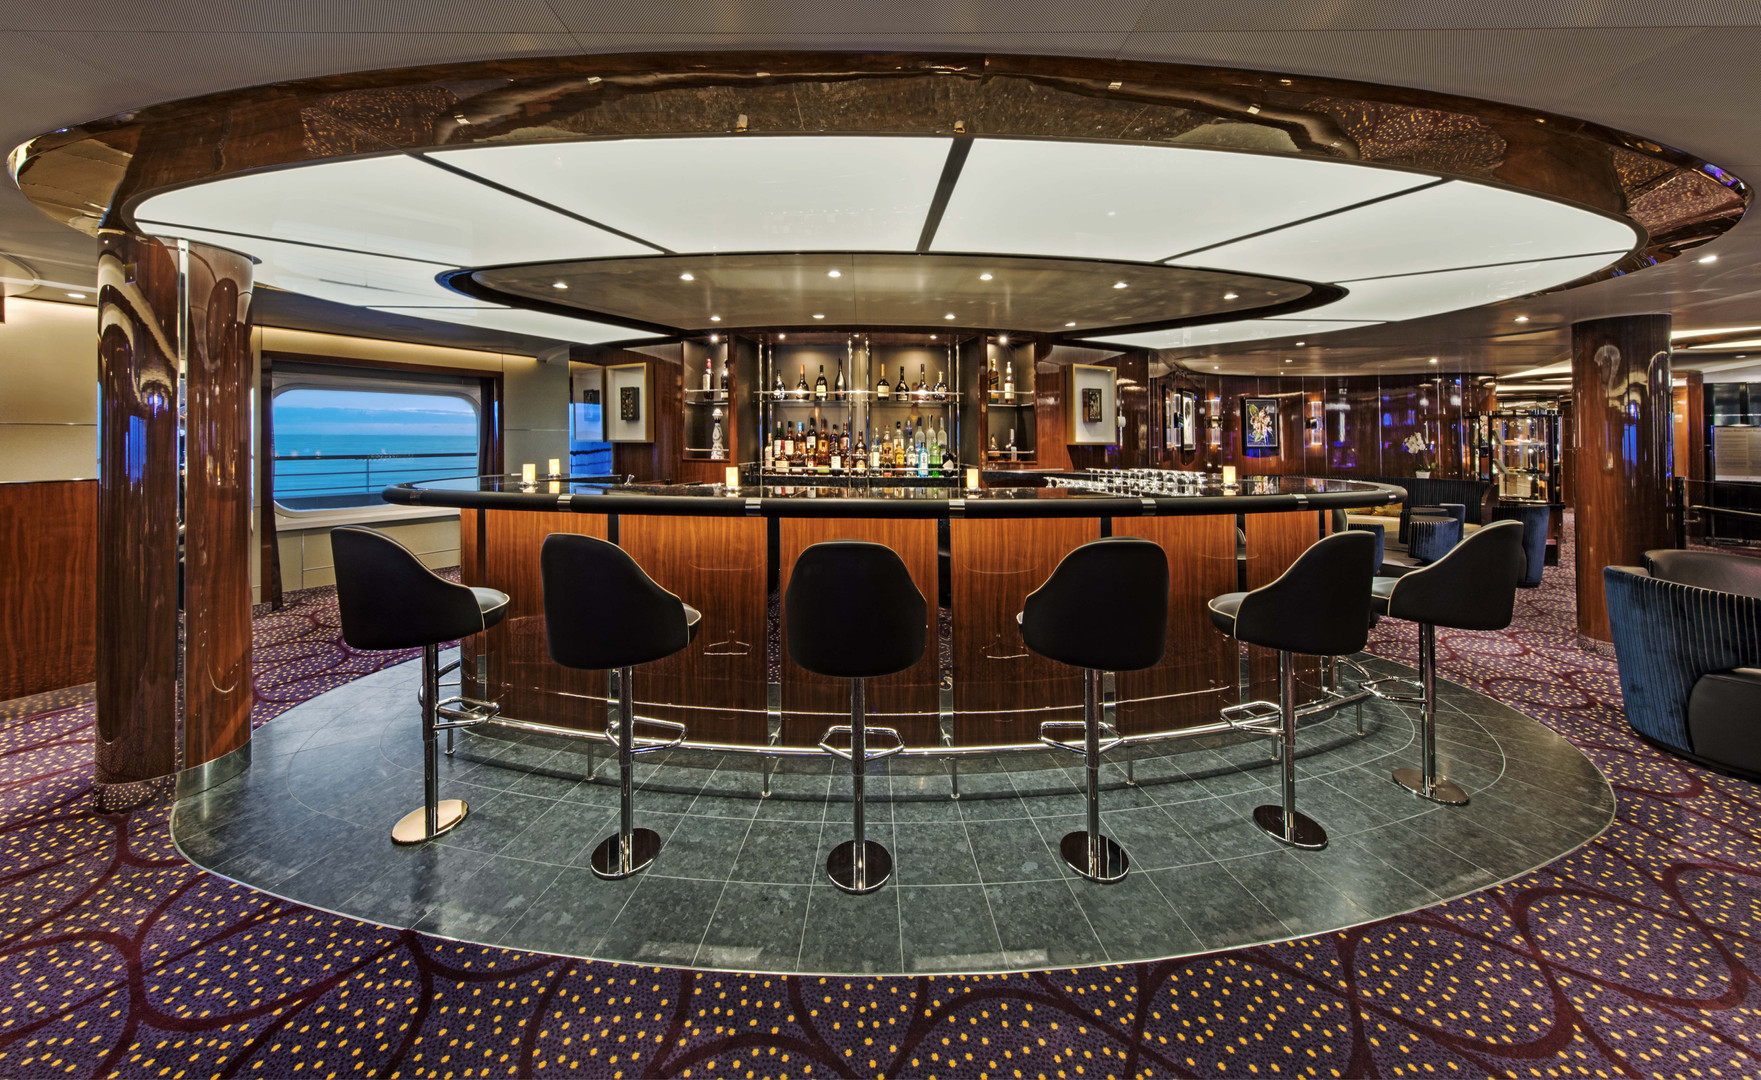 Seabourn Ovation 2018 The Club Preview (